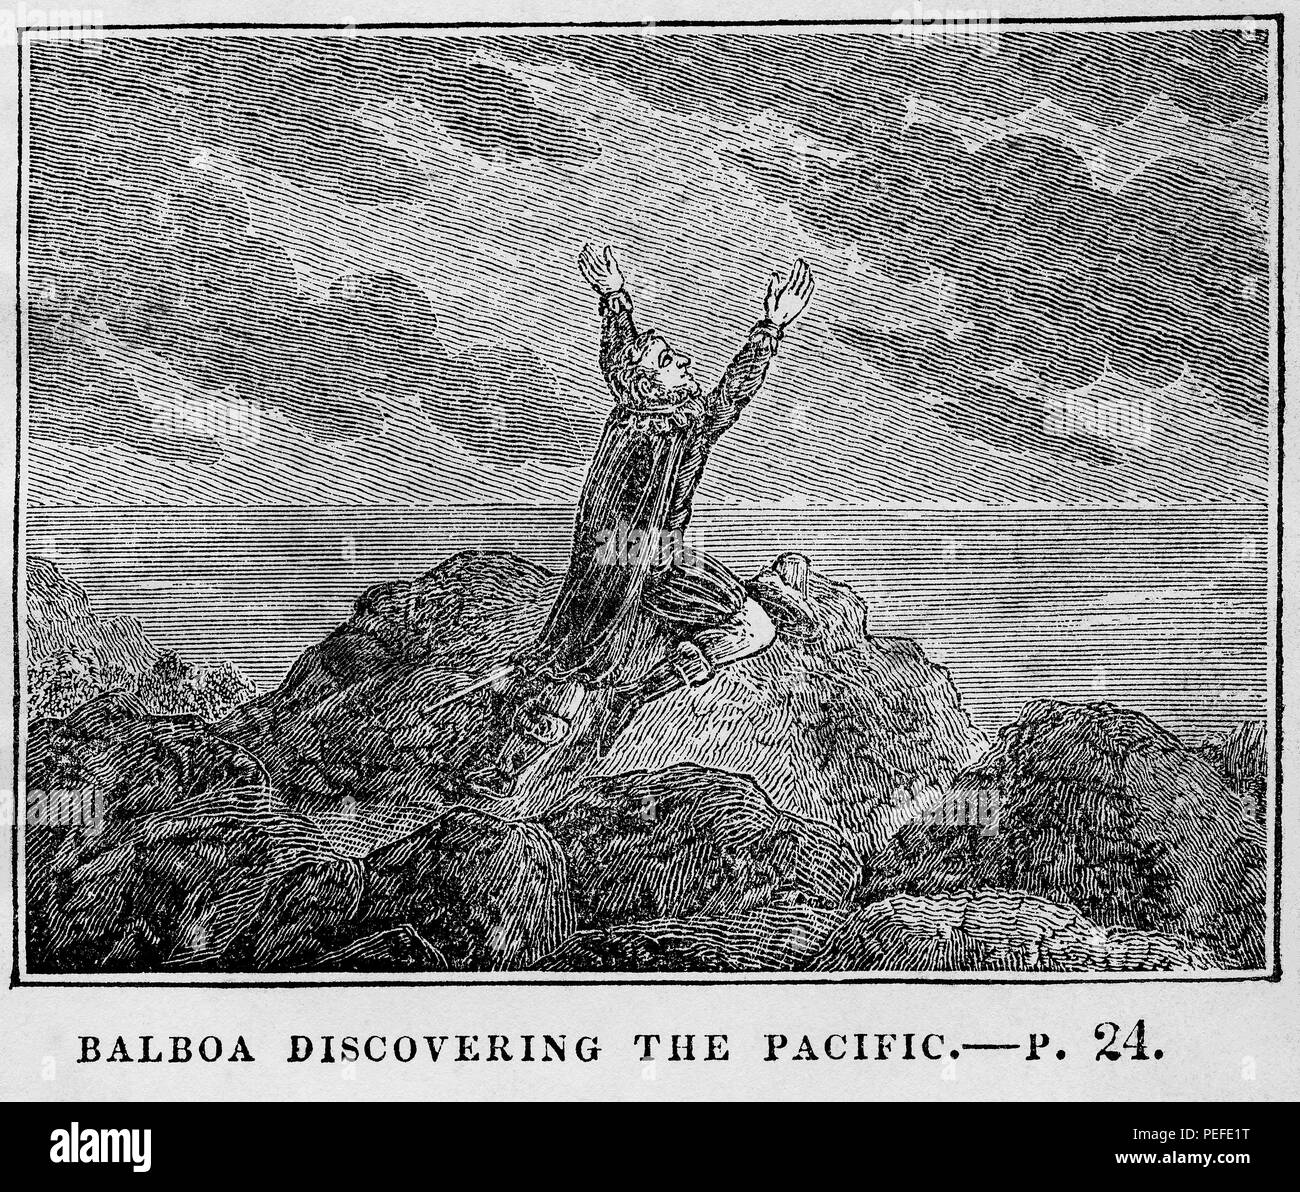 Balboa Discovering the Pacific, Illustration from the Book, Historical Cabinet, L.H. Young Publisher, New Haven, 1834 - Stock Image